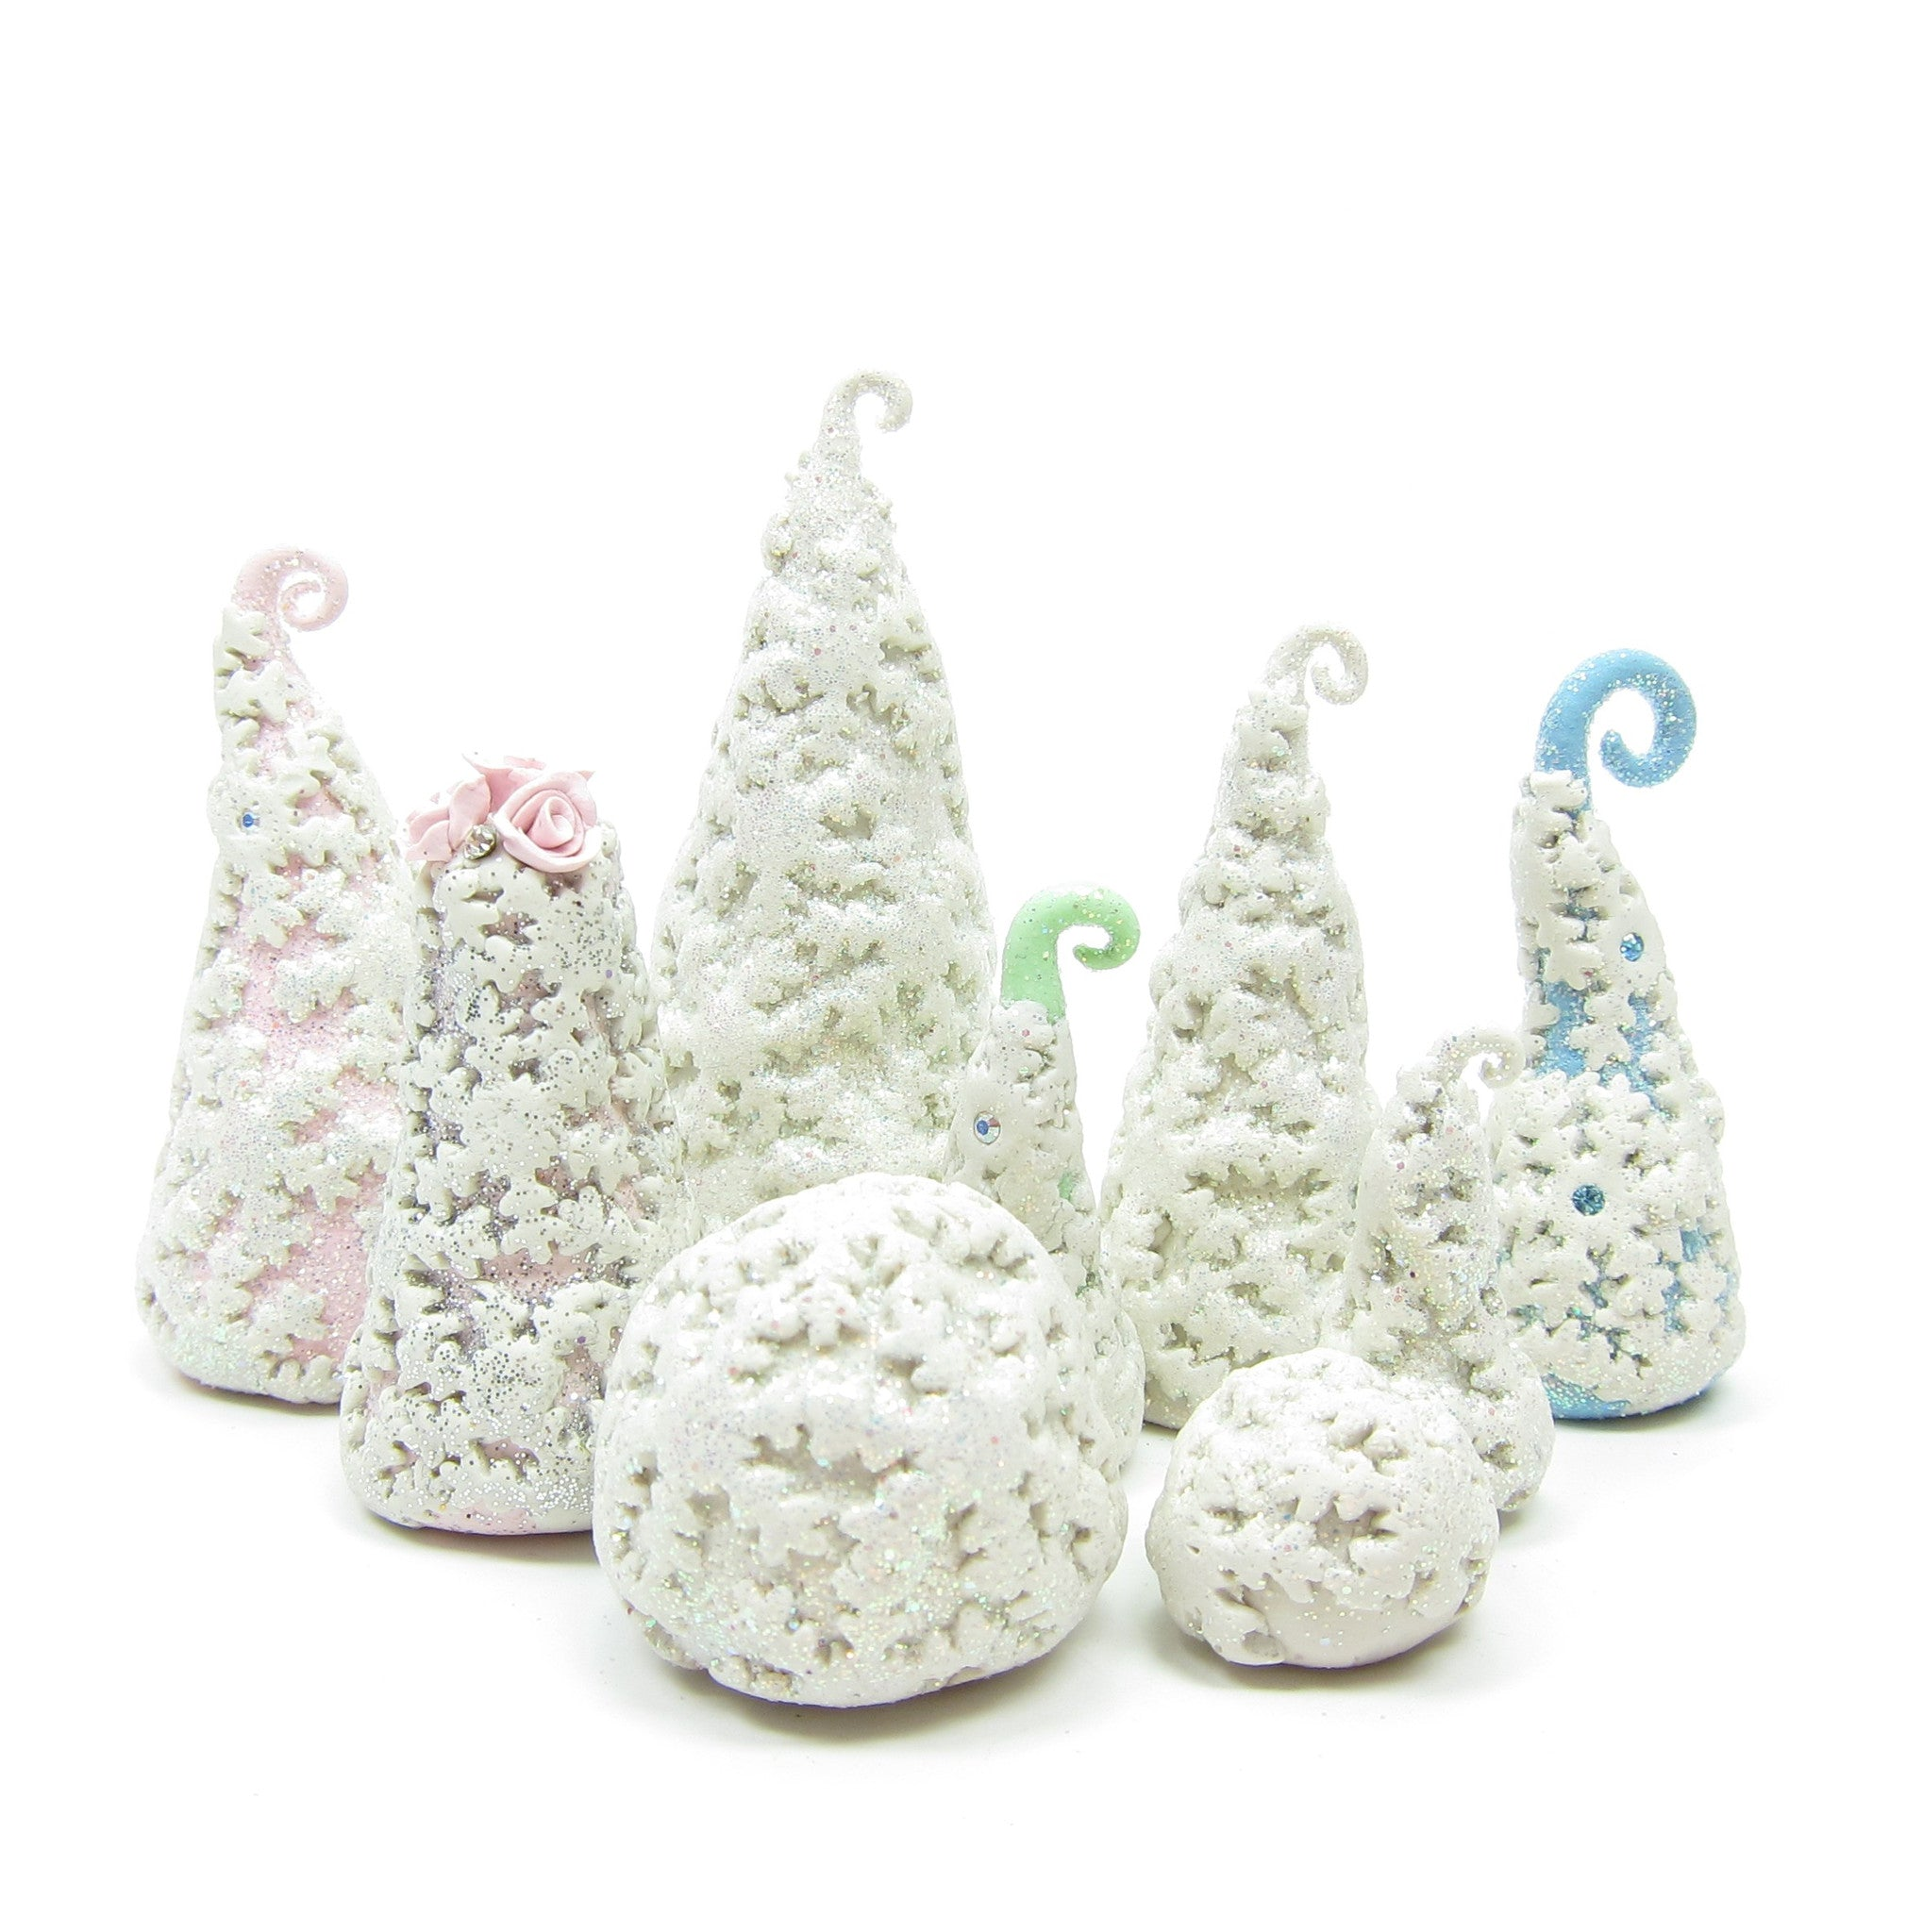 Polymer Clay Christmas Village.Snowflake Bushes Polymer Clay Miniature White Winter